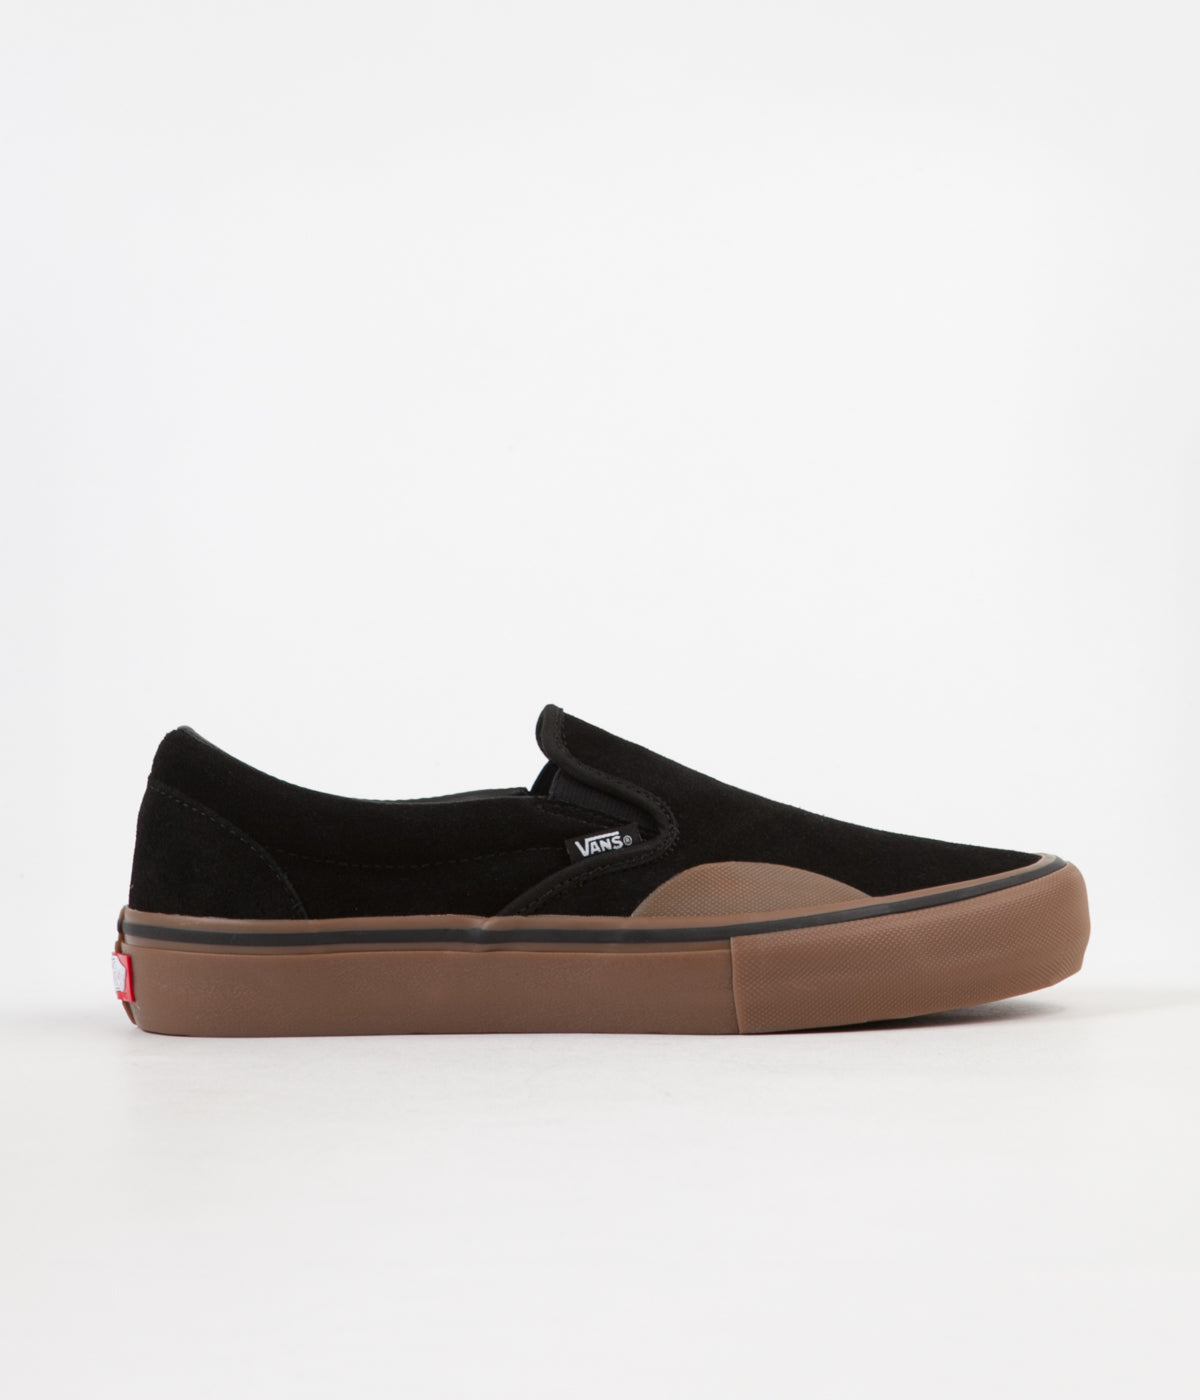 1ba615e395 Vans Slip On Pro Shoes - (Rubber) Black   Gum